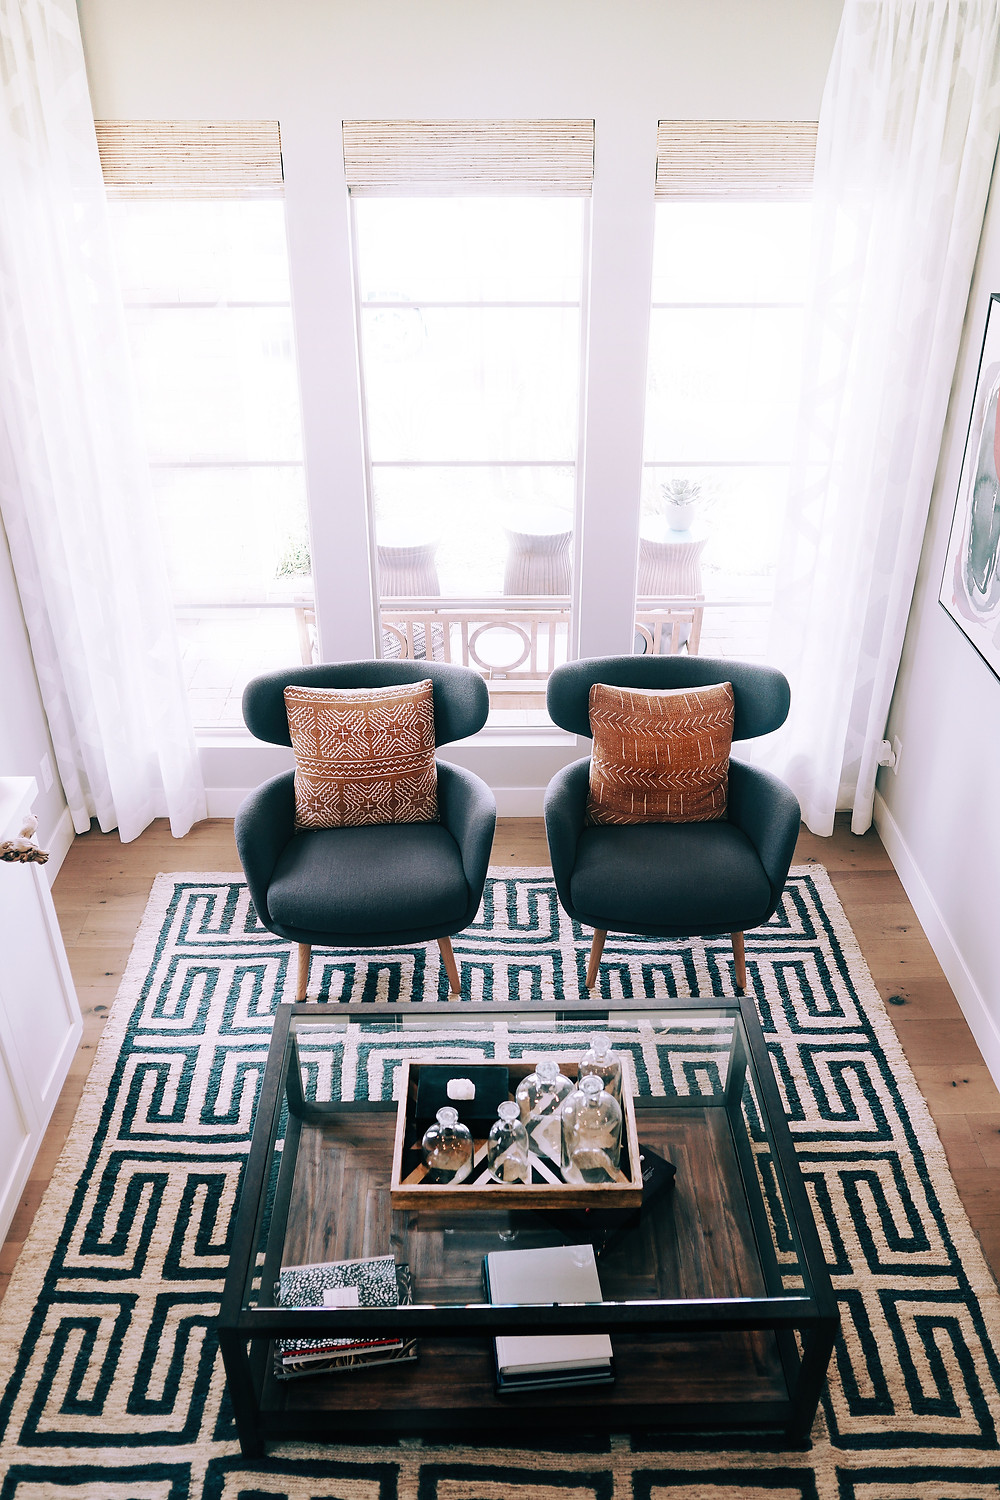 Rug placed in living room; Black and White; Geometric Pattern; Clean and Sophisticated Vibe